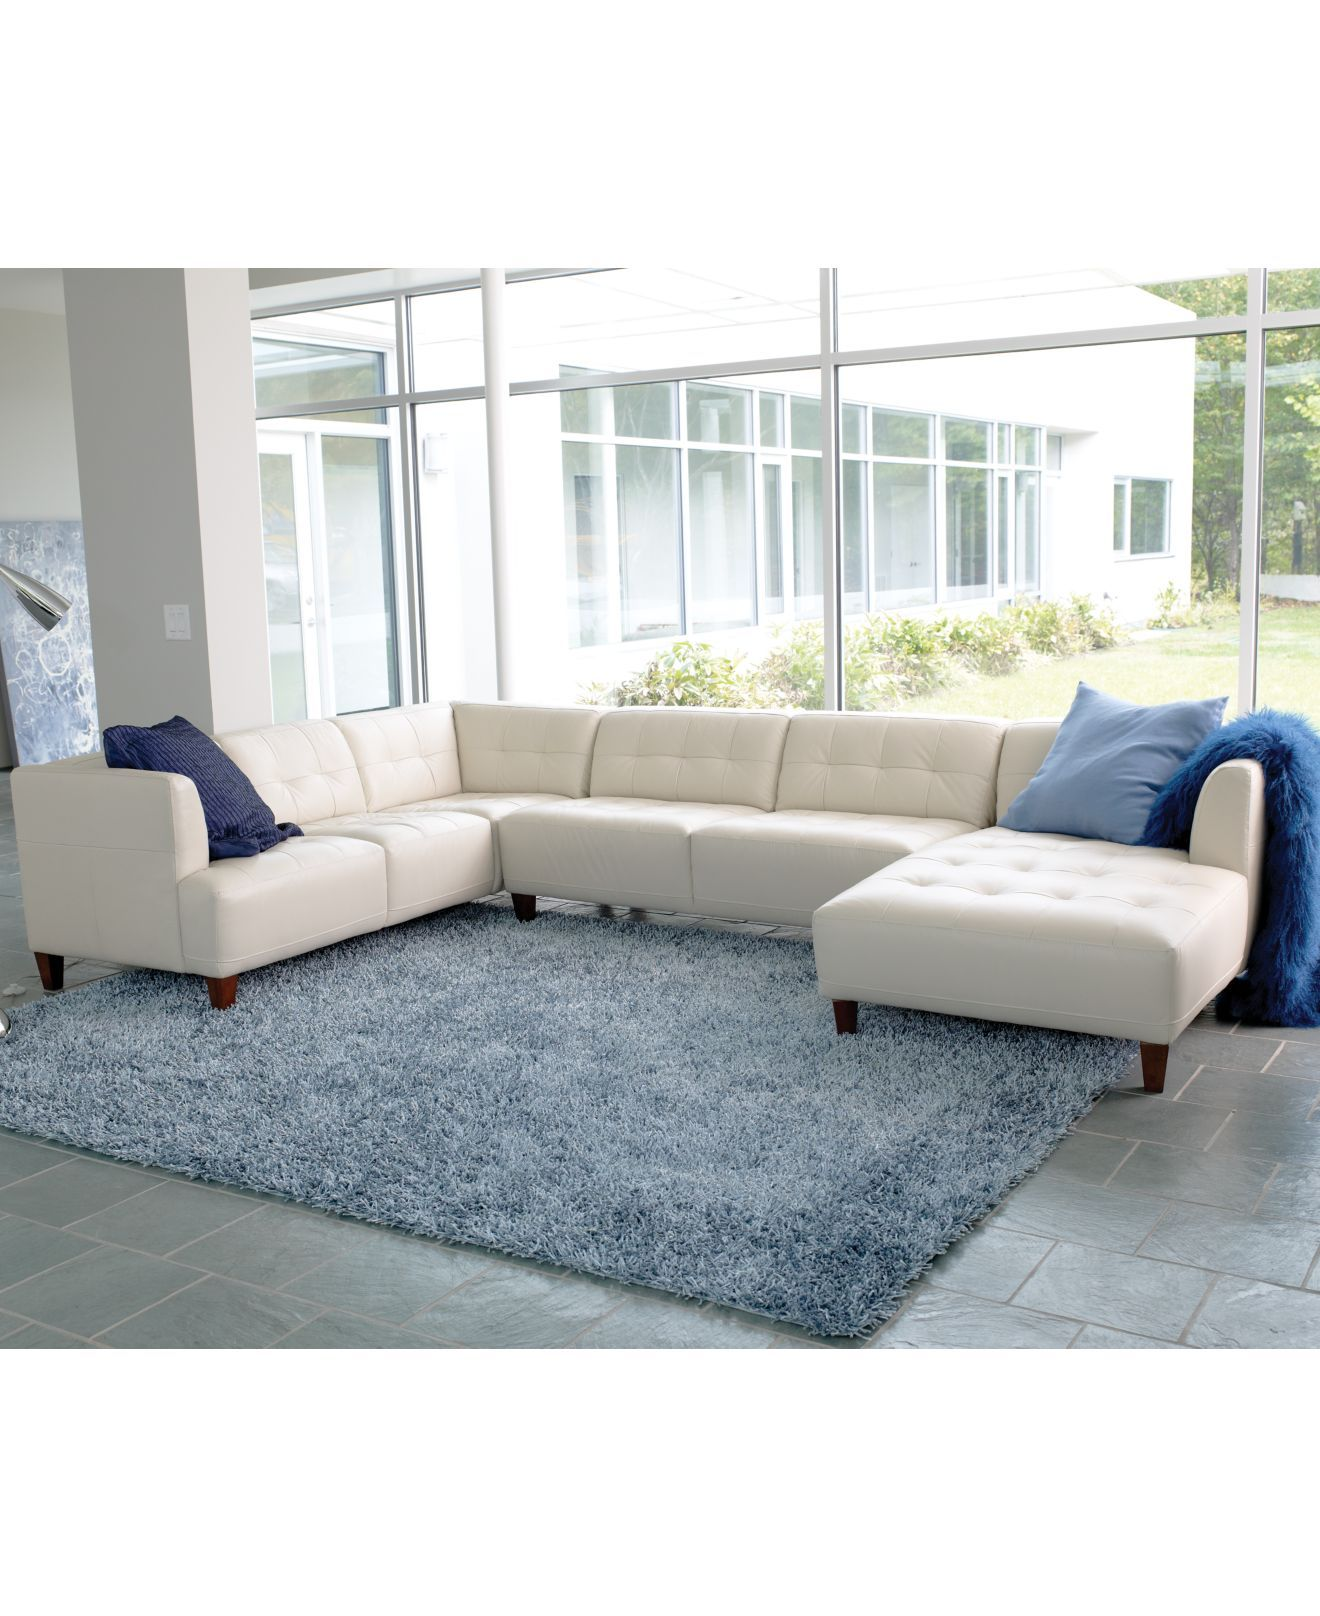 TV ROOM Alessia Leather Sectional Living Room Furniture Sets Pieces